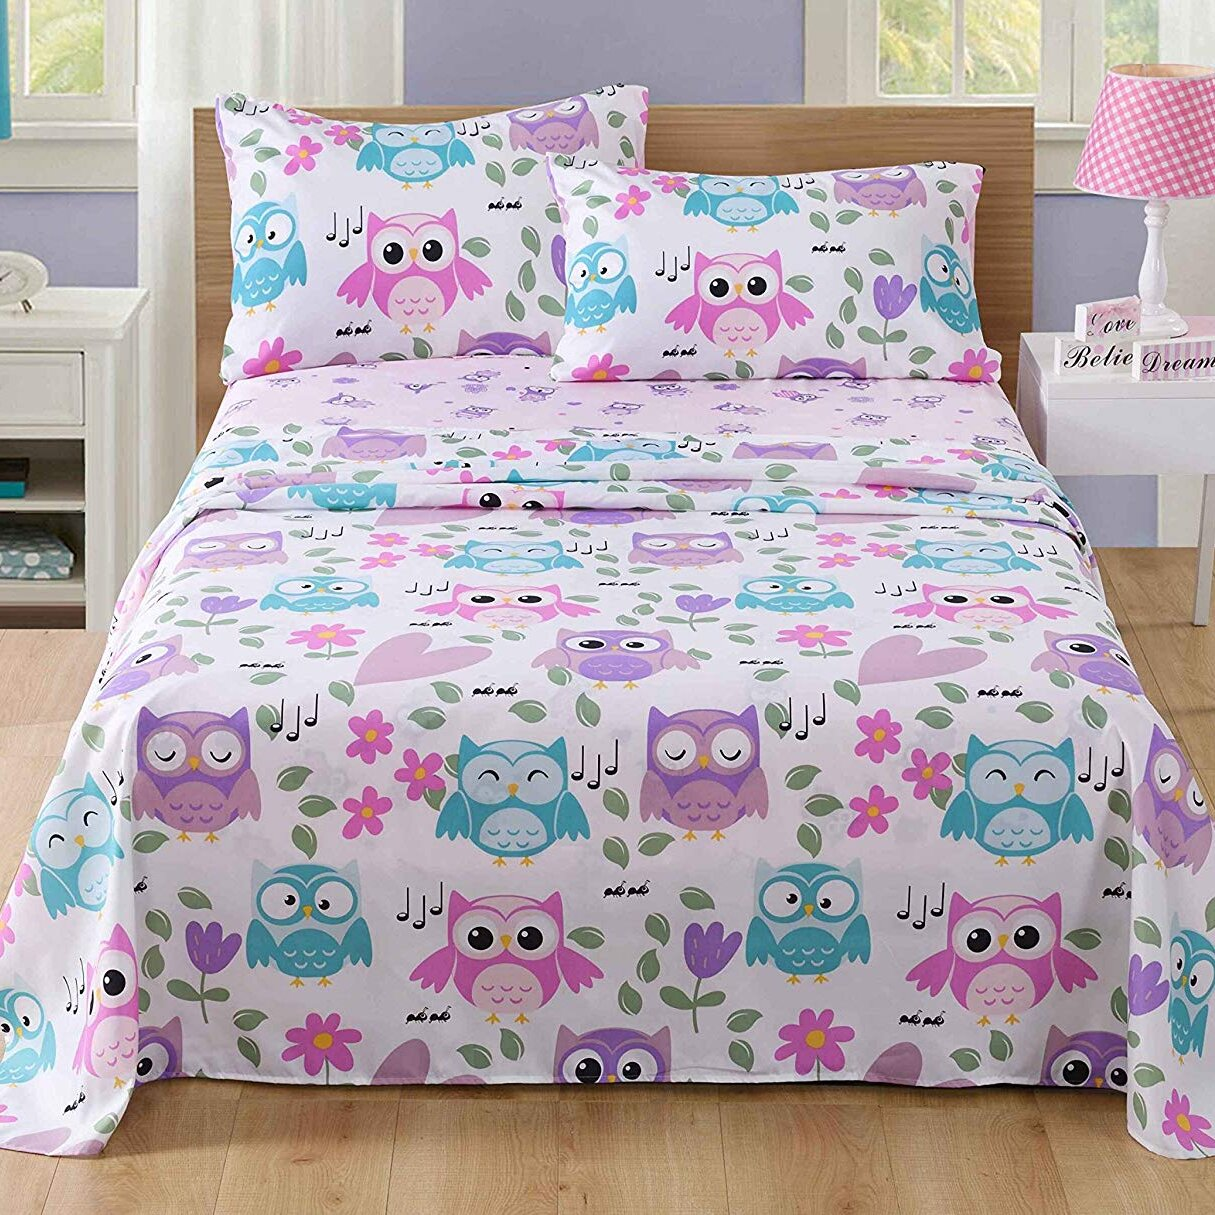 LCGGDB 3D Childrens Cartoon Customied Fitted Sheet,Five Nights at Freddys Soft Decorative Fabric Bedding Stain Resistant Deep Pocket Bed Sheet,Twin XL Size Sheet Kids Bedding Decor